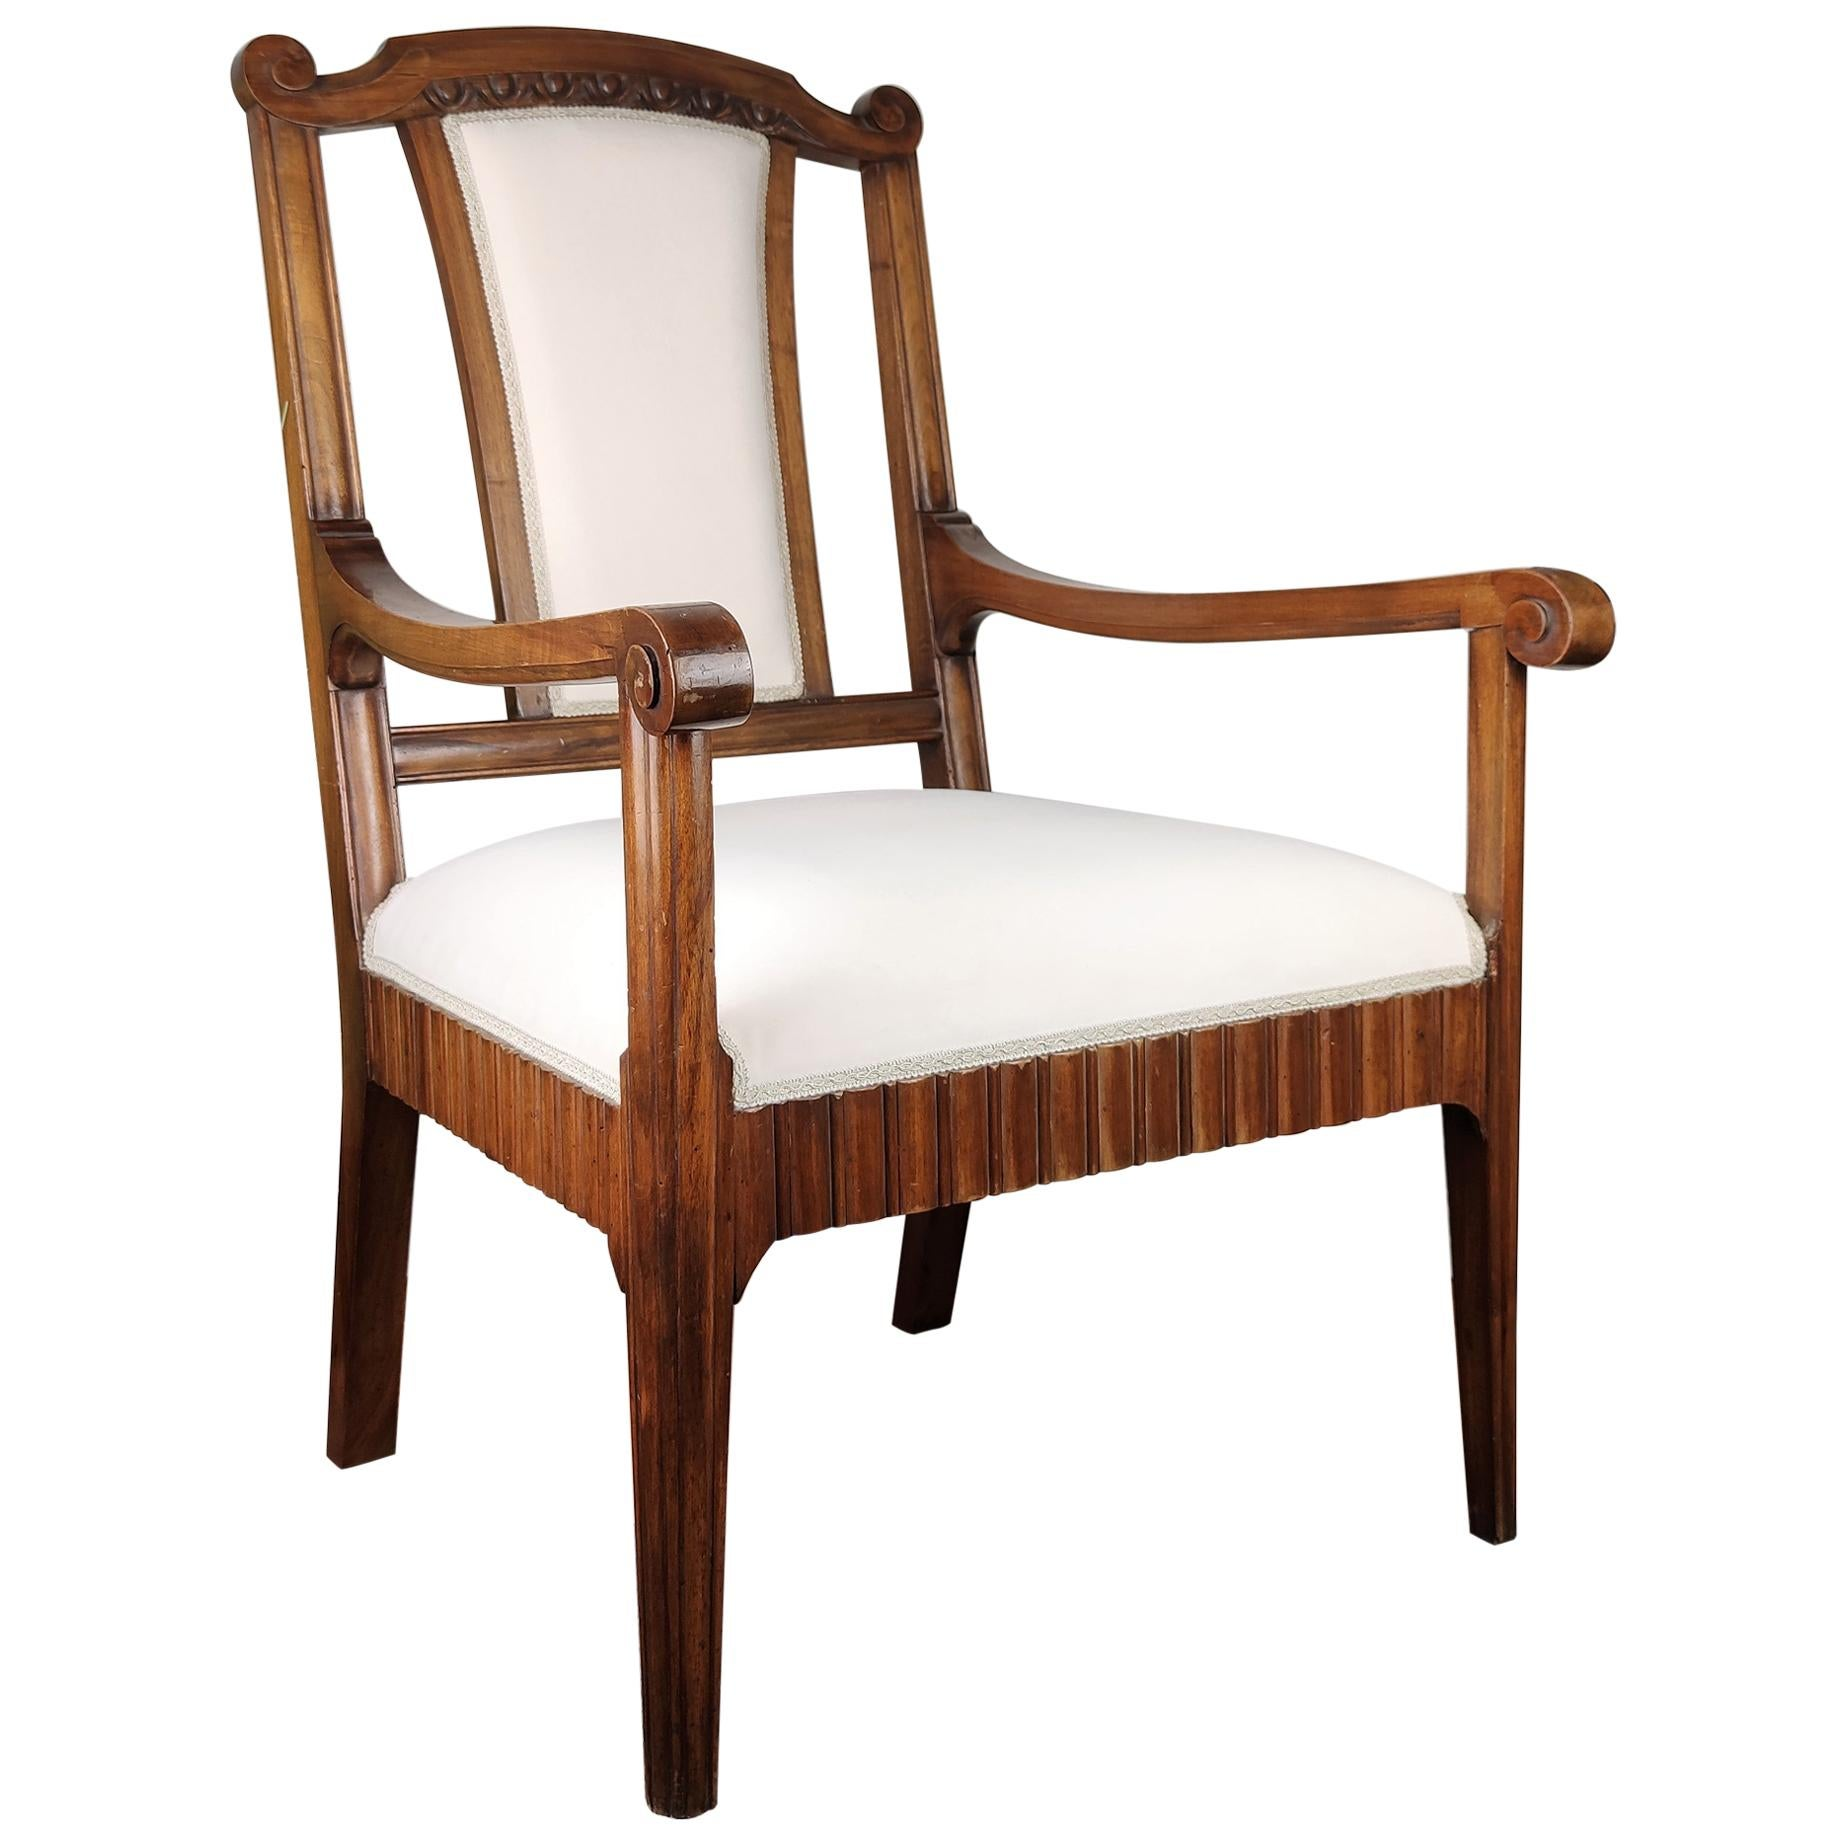 1930s Neoclassical Italian Carved Walnut Wood Armchair Newly Upholstered